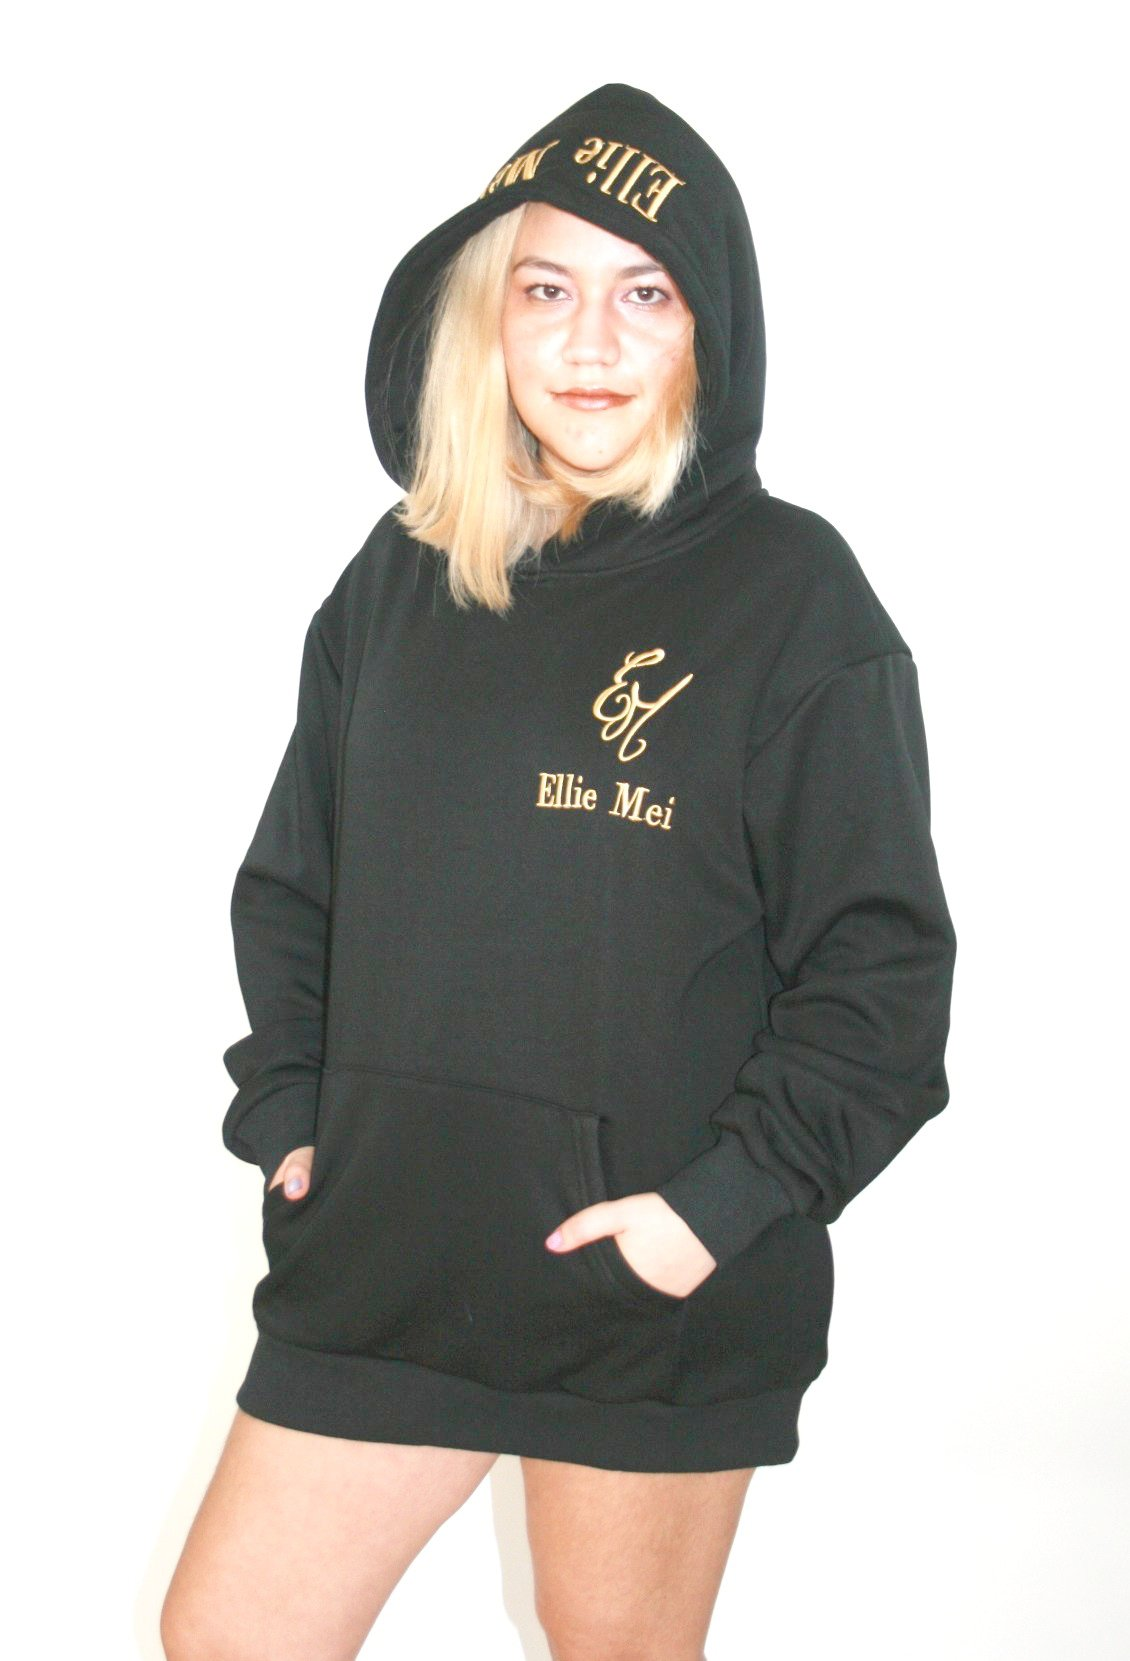 Ellie Mei Black Unisex Embroidery Hoodie Cotton Hoodie Maxi Top EMW180053